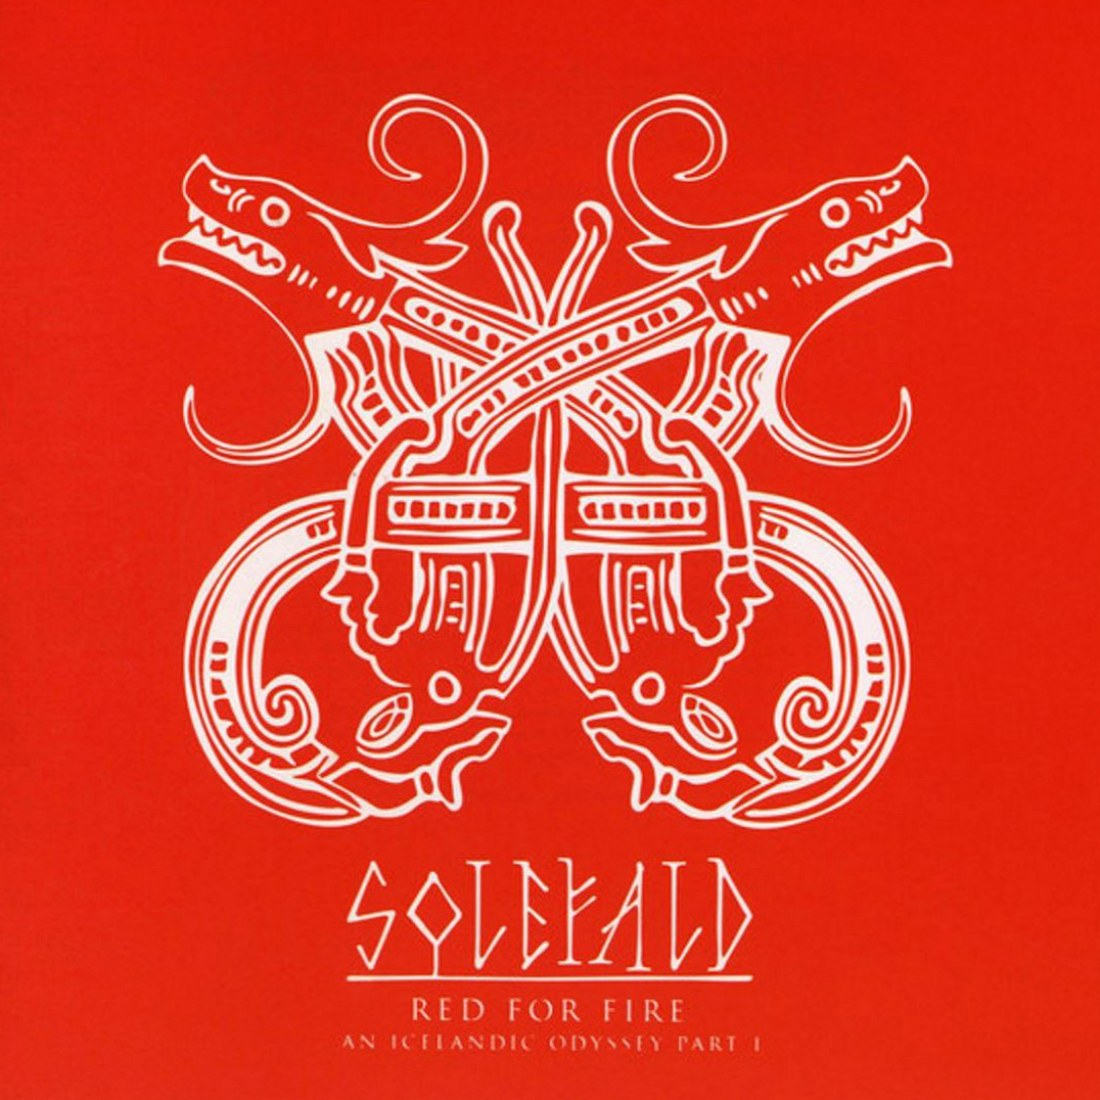 Review for Solefald - Red for Fire (An Icelandic Odyssey: Part I)